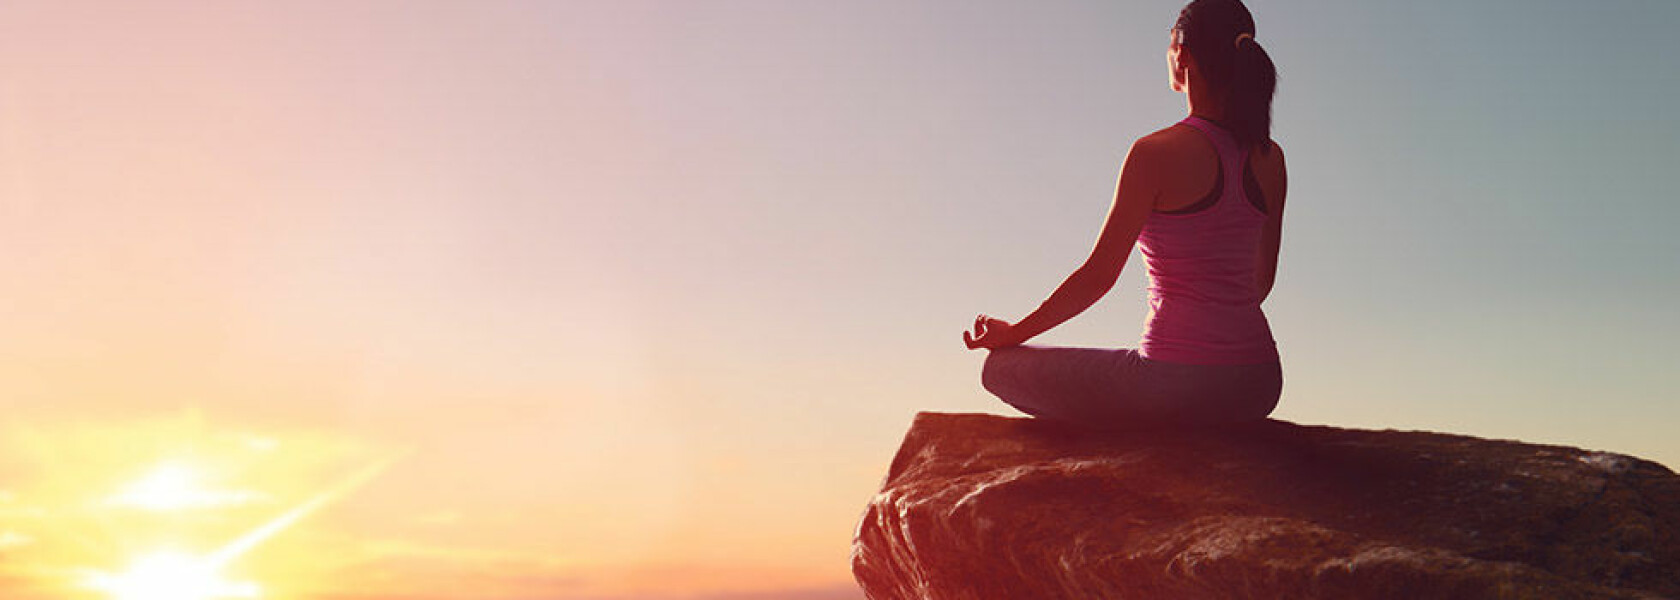 Woman practices yoga and meditates on the mountain.; Shutterstock ID 688367407